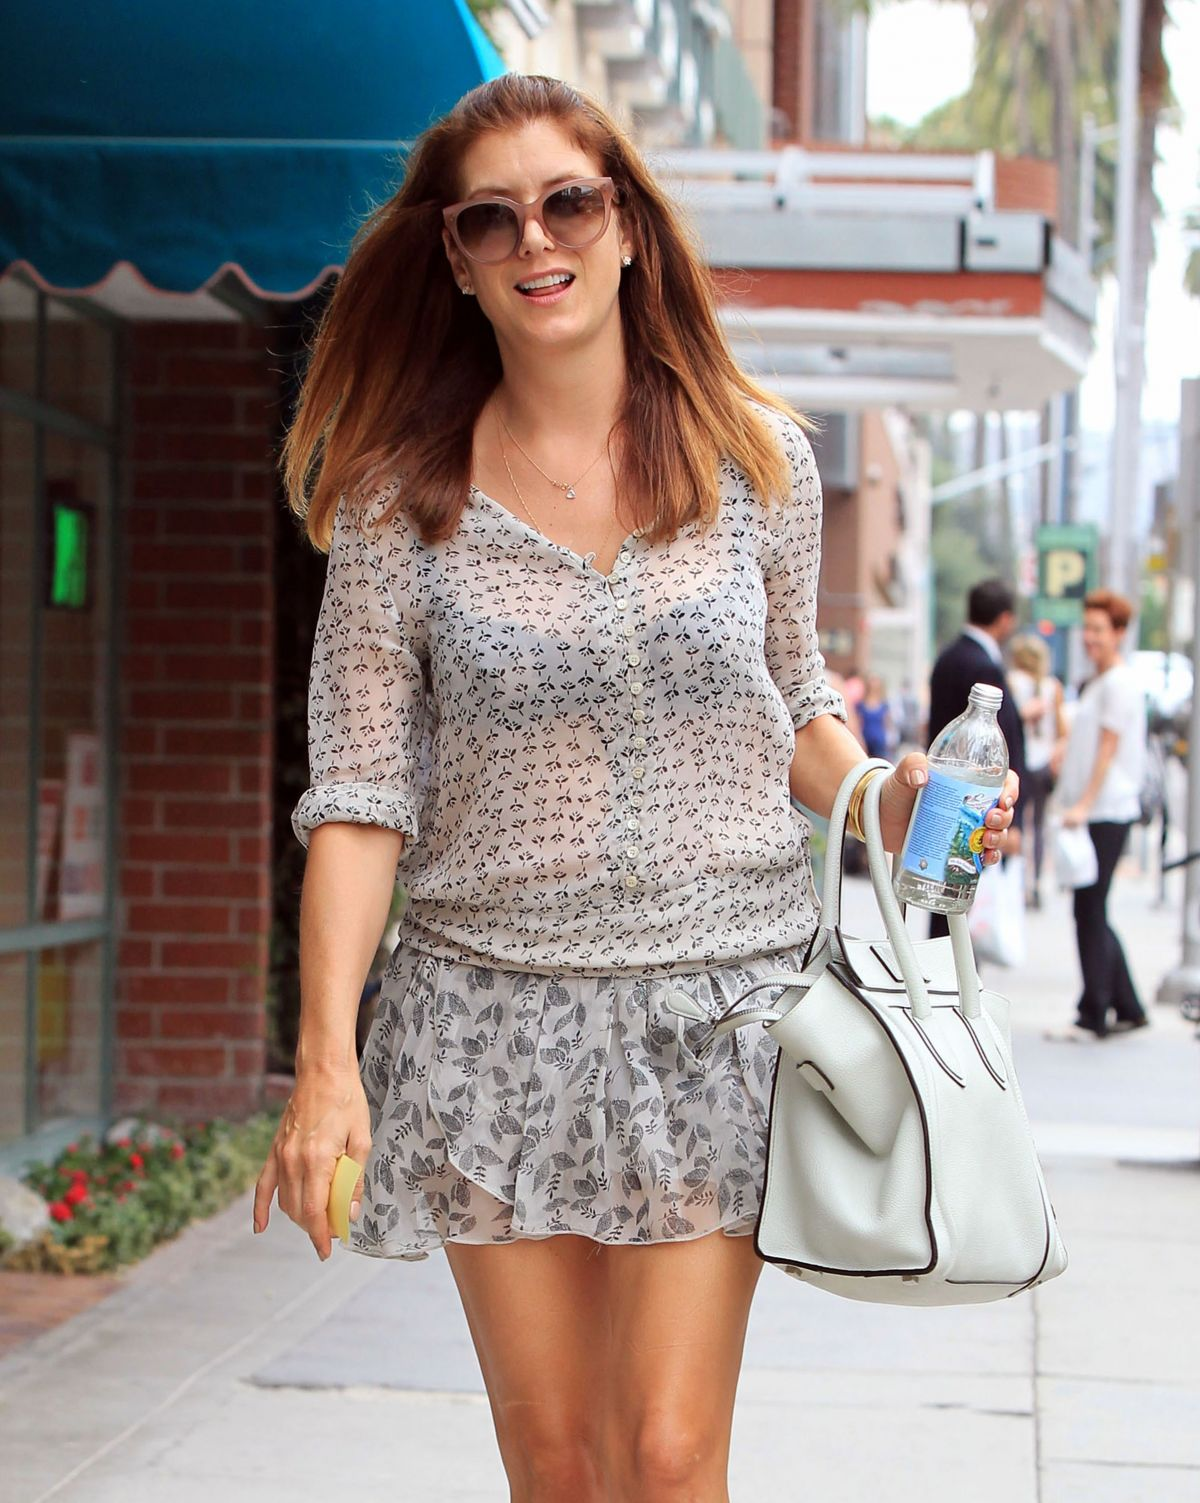 KATE WALSH in Short Skirt Out in Beverly Hills 08/06/2015